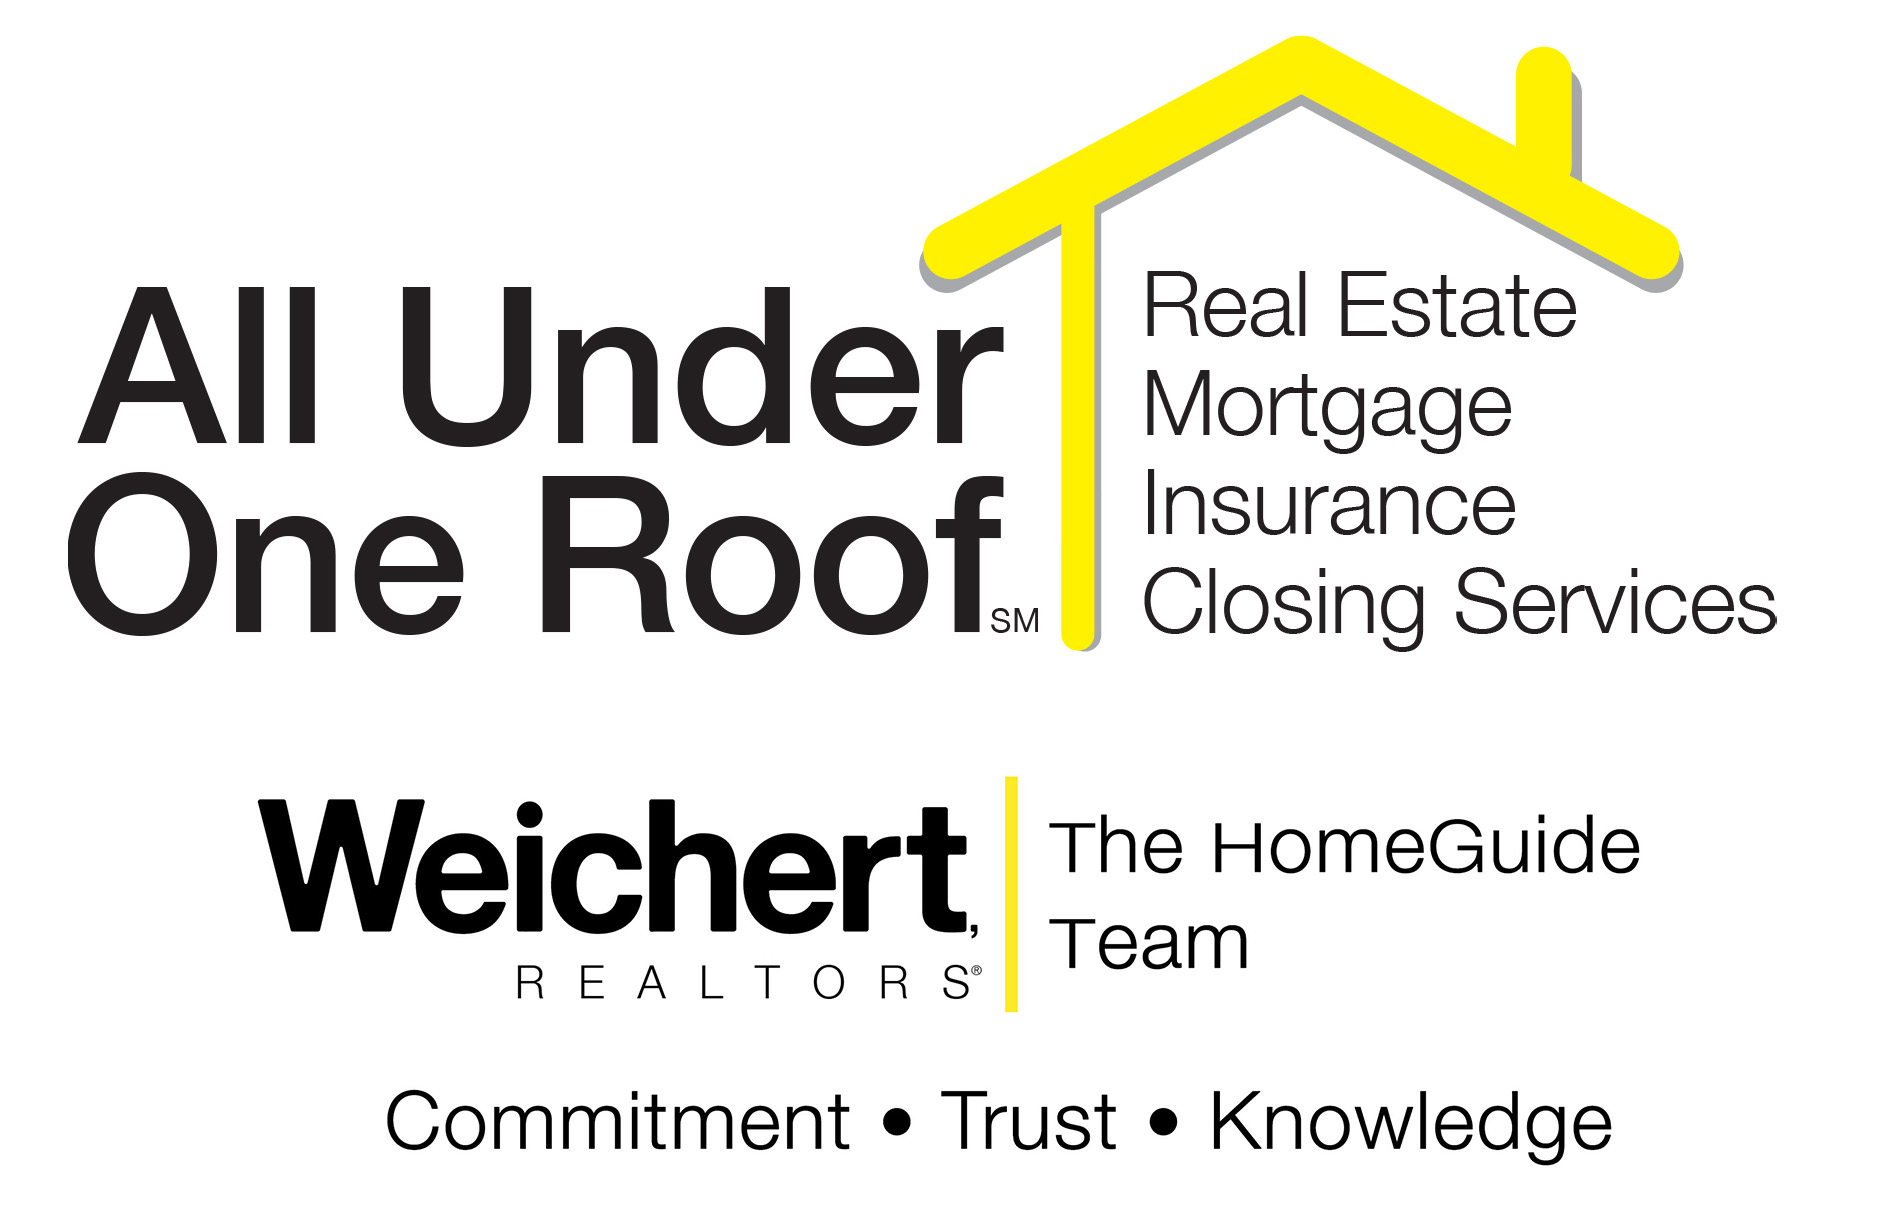 View the Weichert Team and their Services